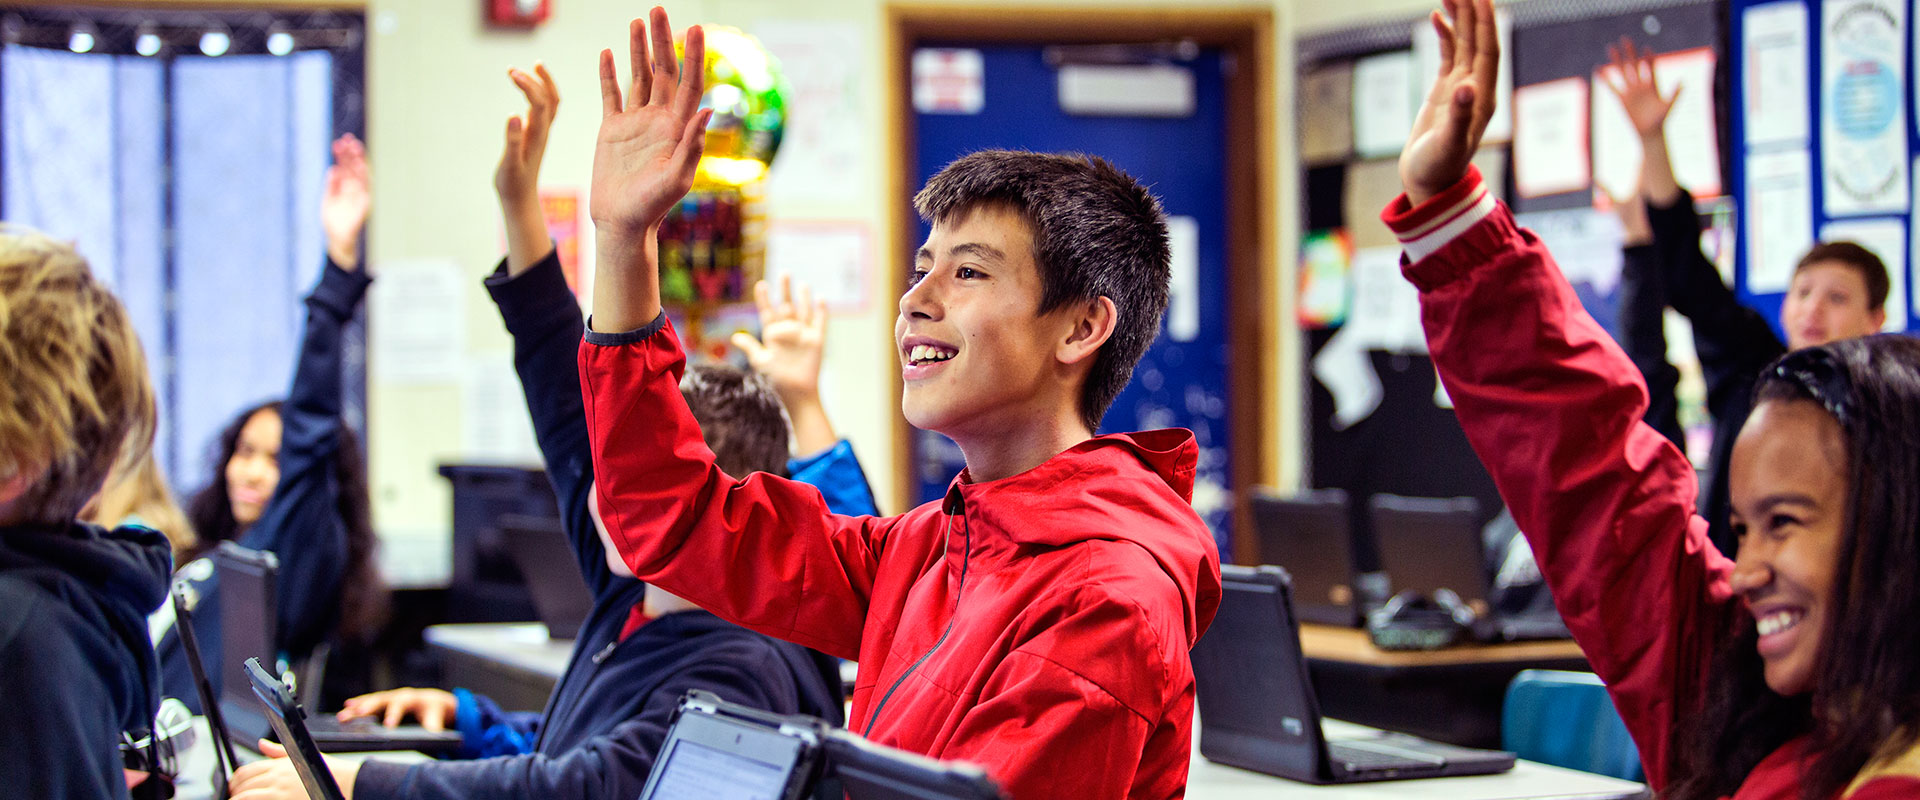 Elementary students in a computer lab raising their hands and smiling